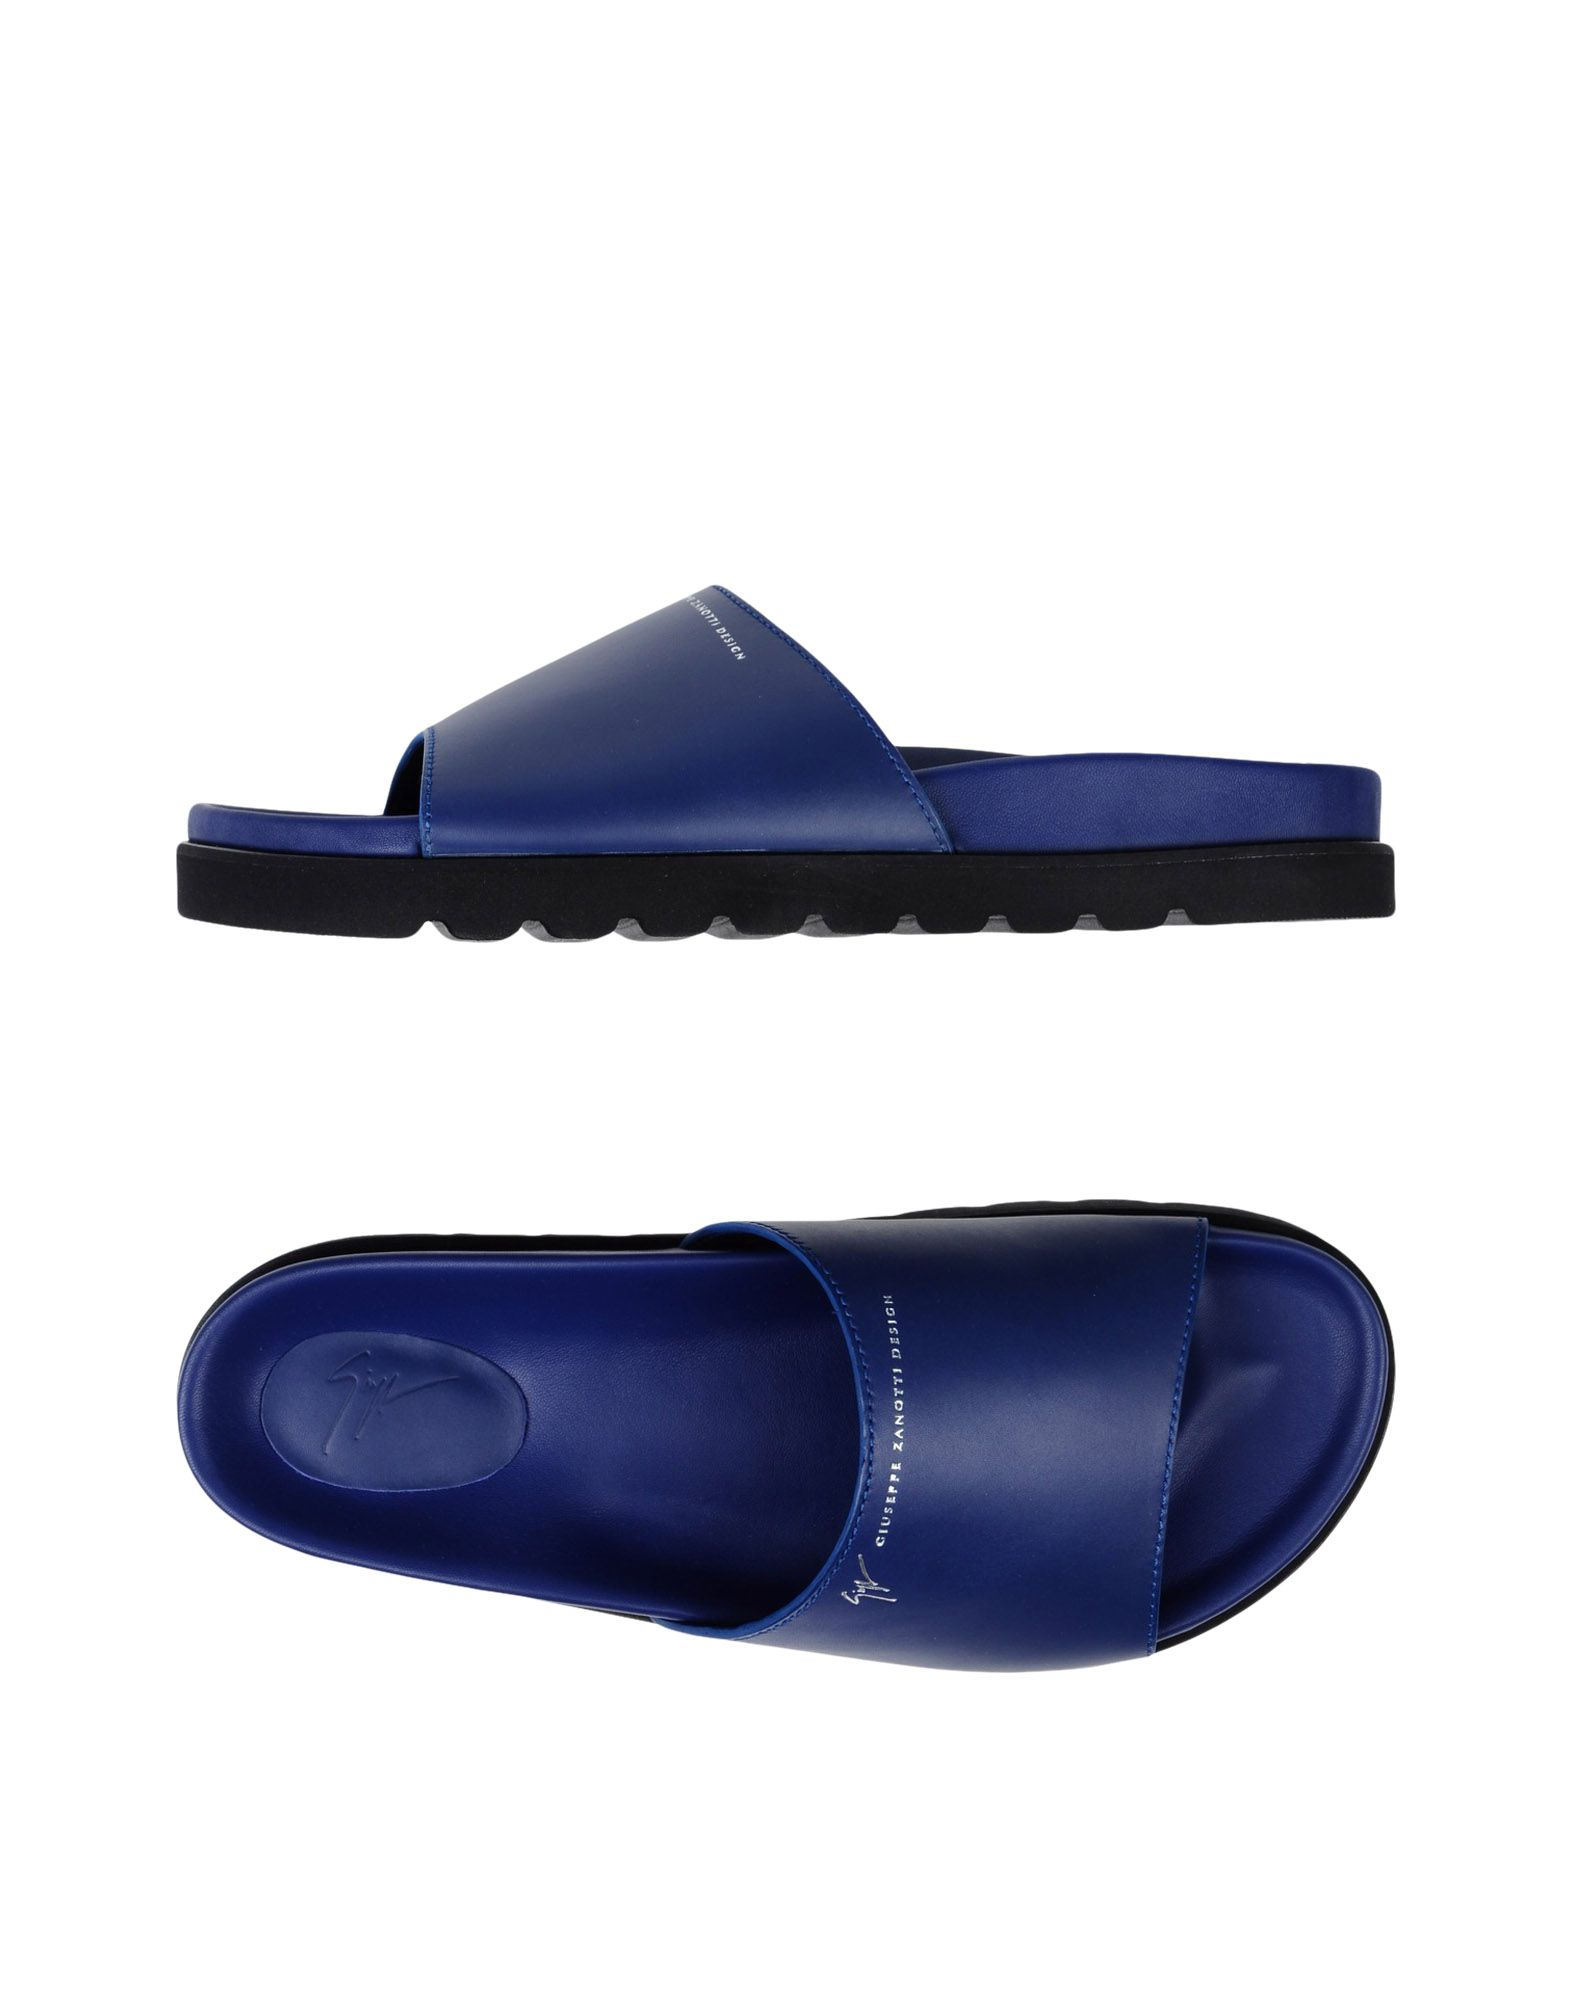 Giuseppe Zanotti Sandals - Men Giuseppe Zanotti Sandals online on 11371262GS  United Kingdom - 11371262GS on 469a05